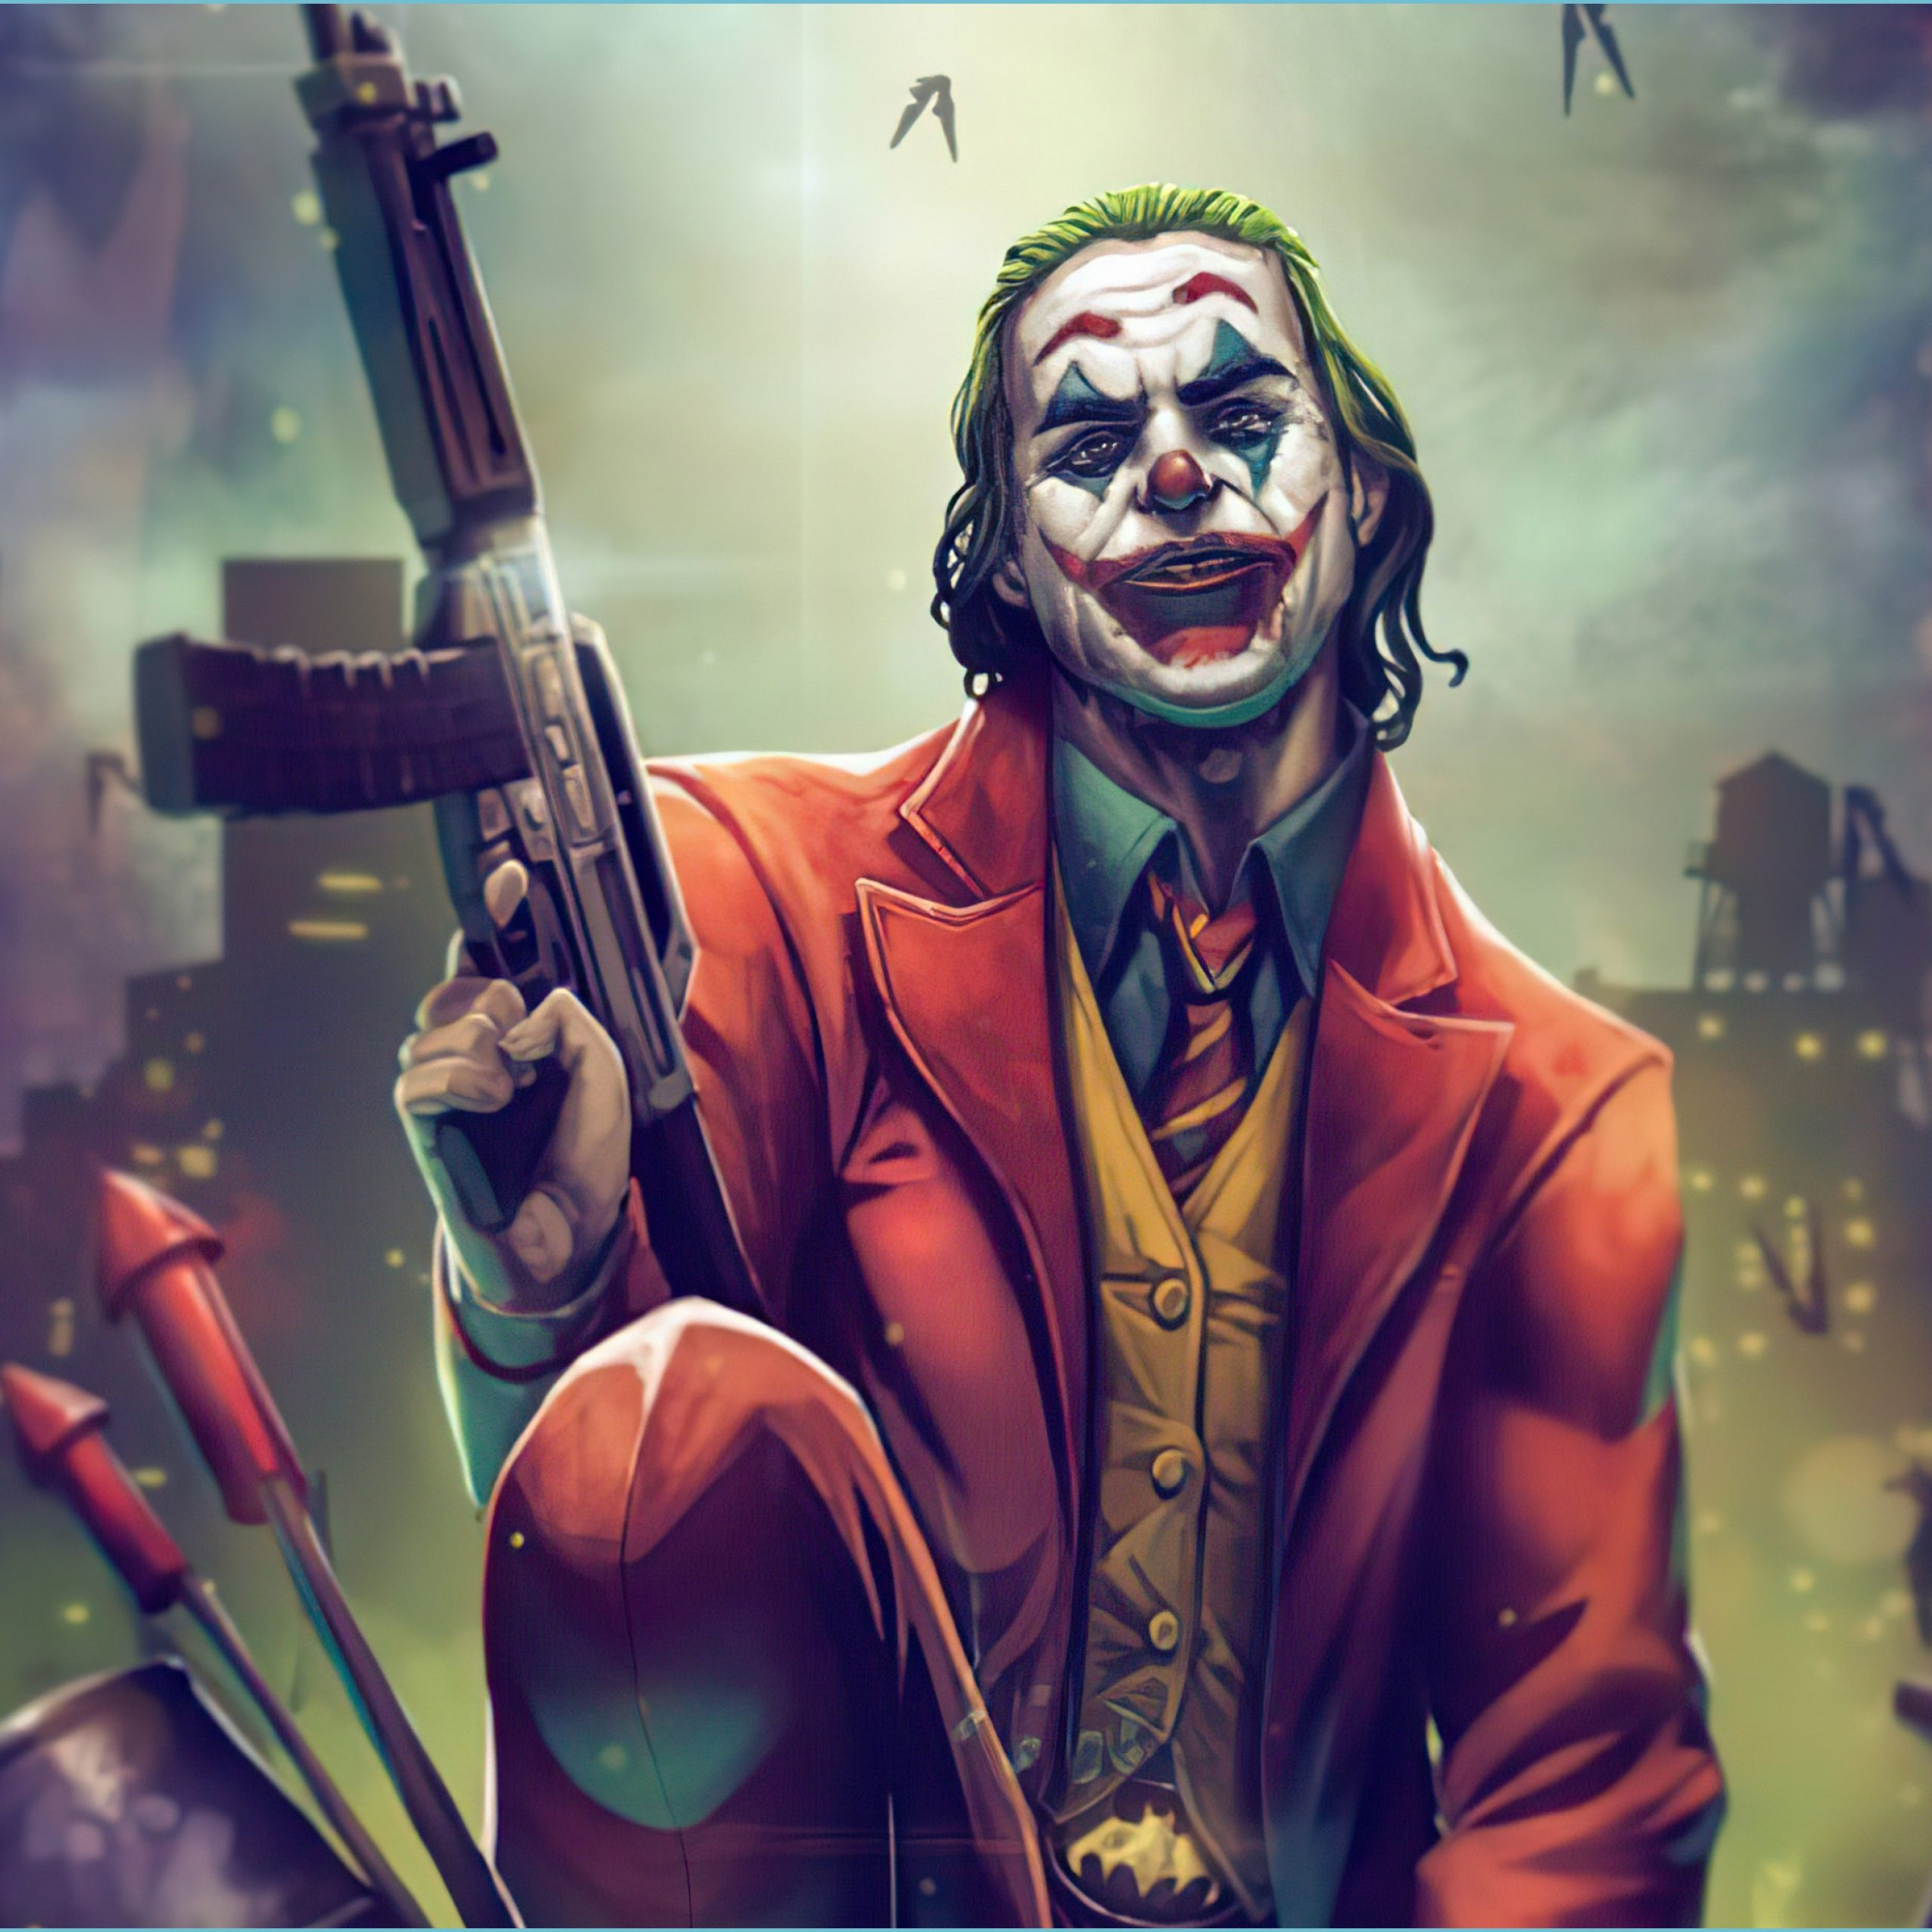 joker with gun up 12k wallpaper title joker with joker wallpaper joker wallpaper 4k